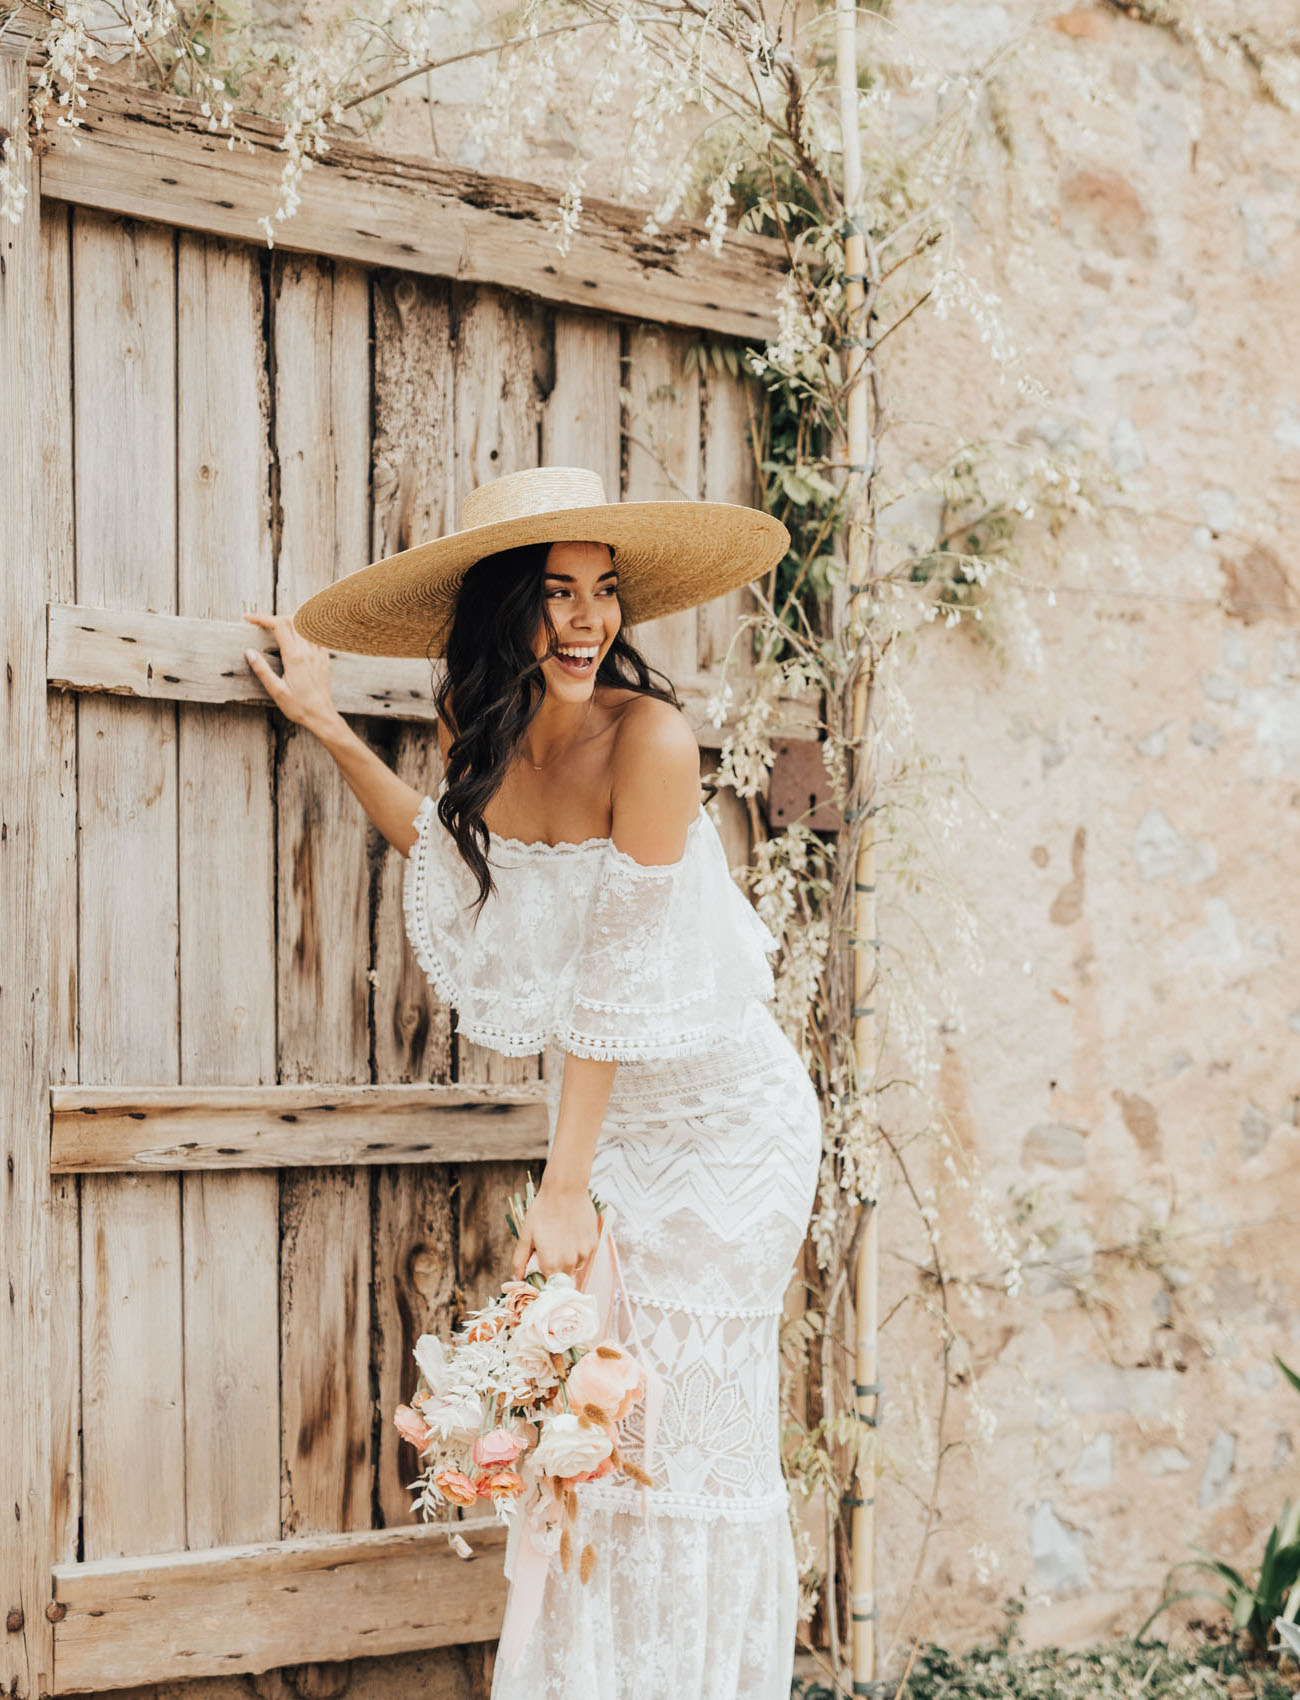 Peachy Coral Hues + Boho Vibes or Modern, Edgy + Luxe Wedding in Barcelona? Choose Your Fave!